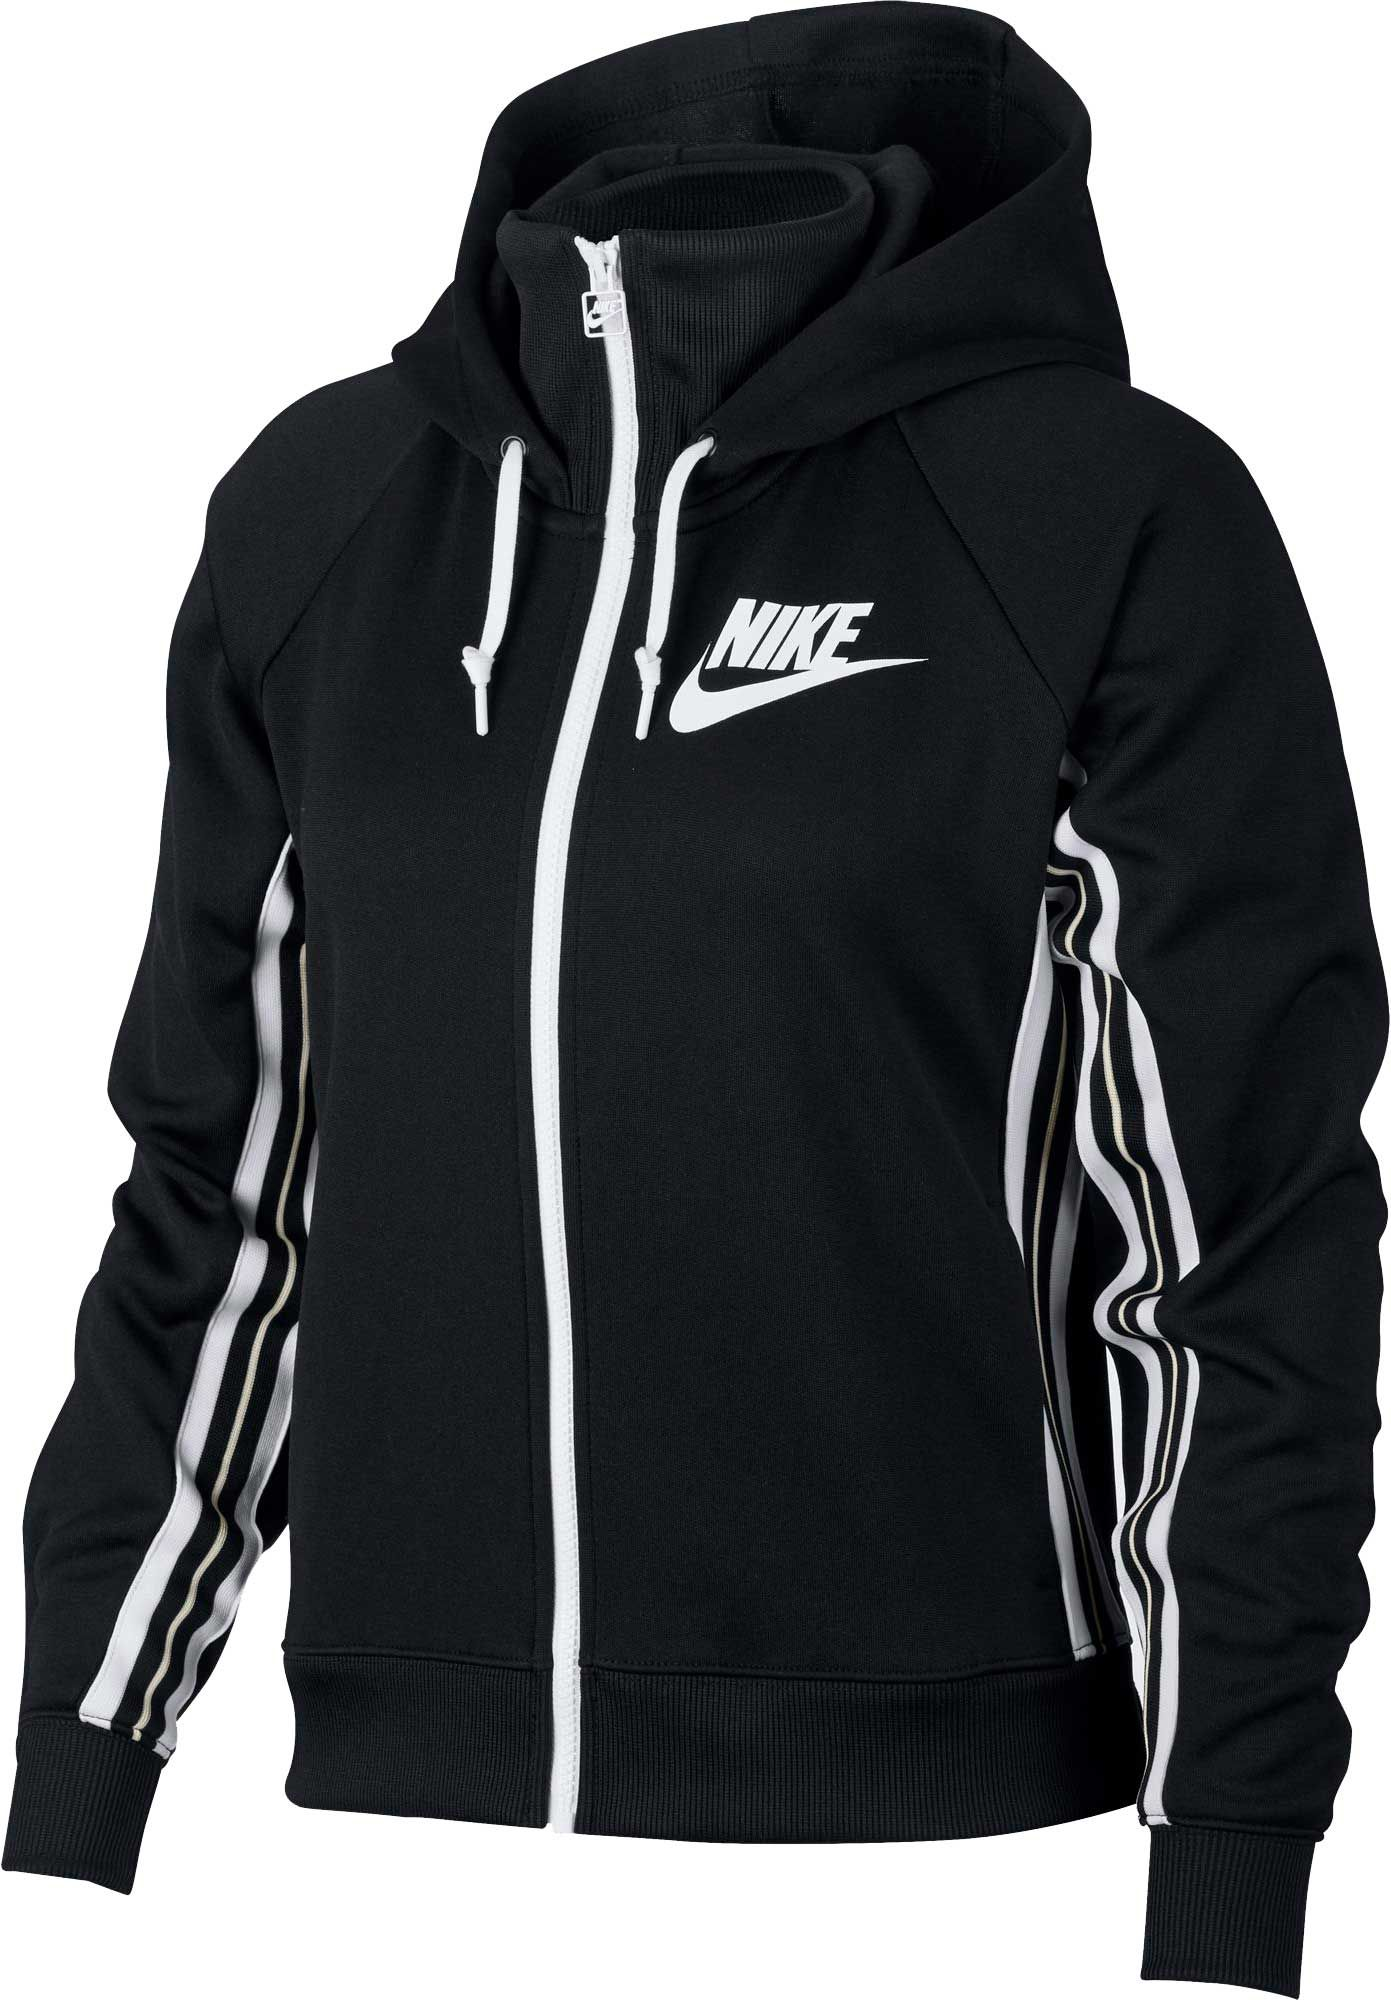 Stylish with tracksuits from Nike – ChoosMeinStyle